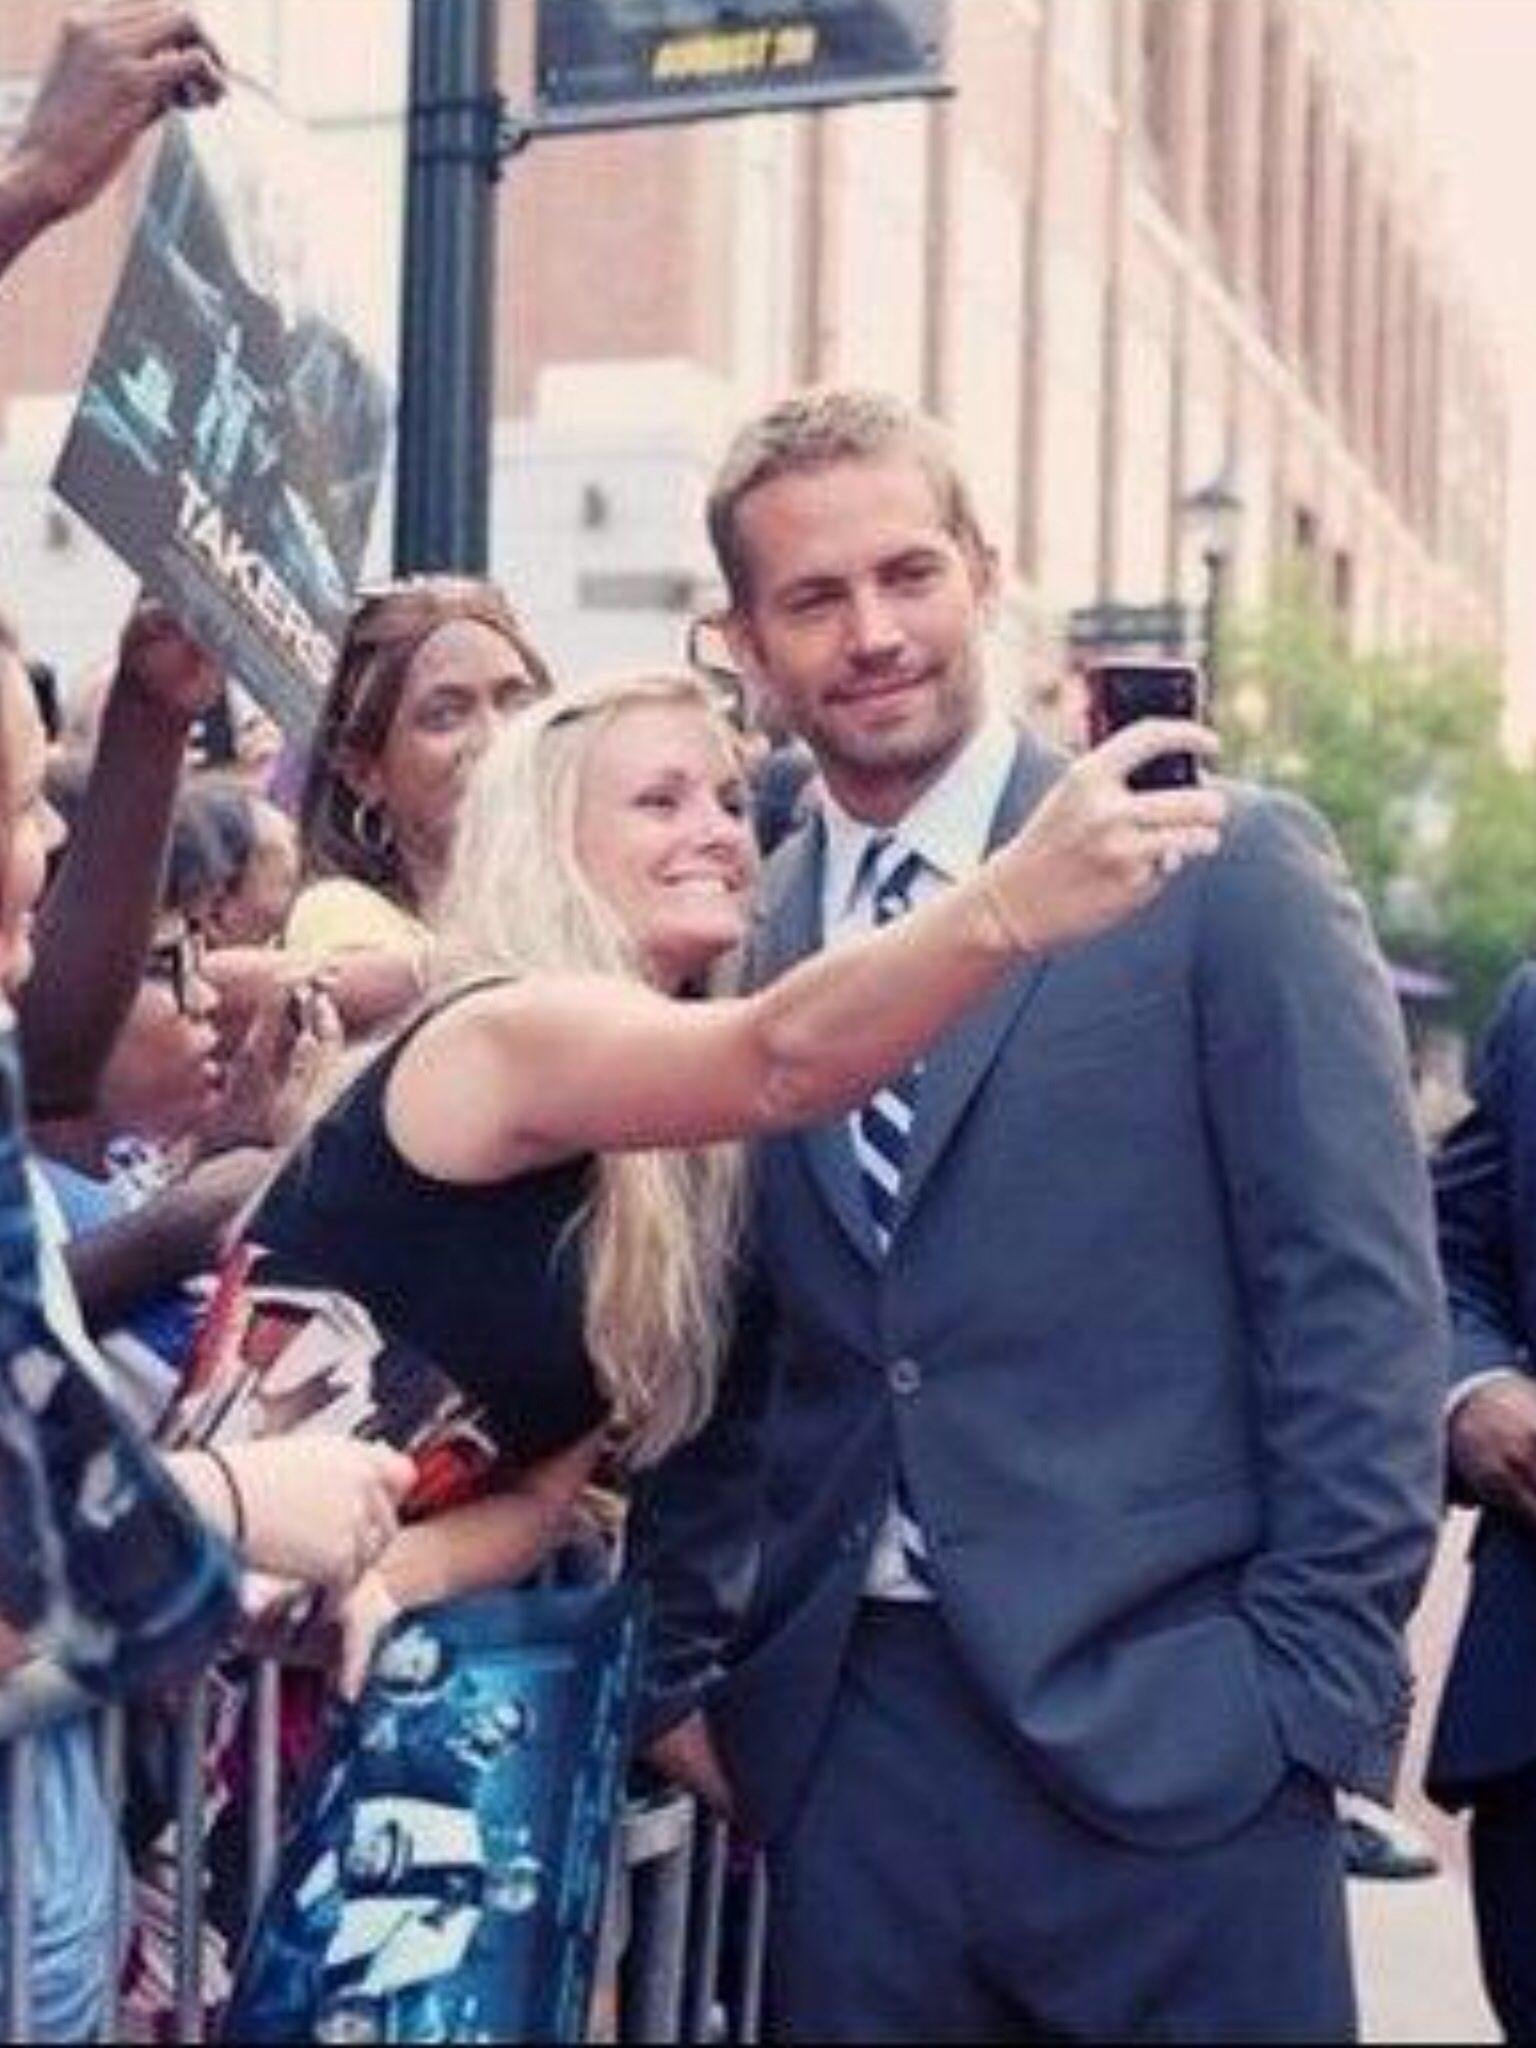 Paul at Takers a Premiere